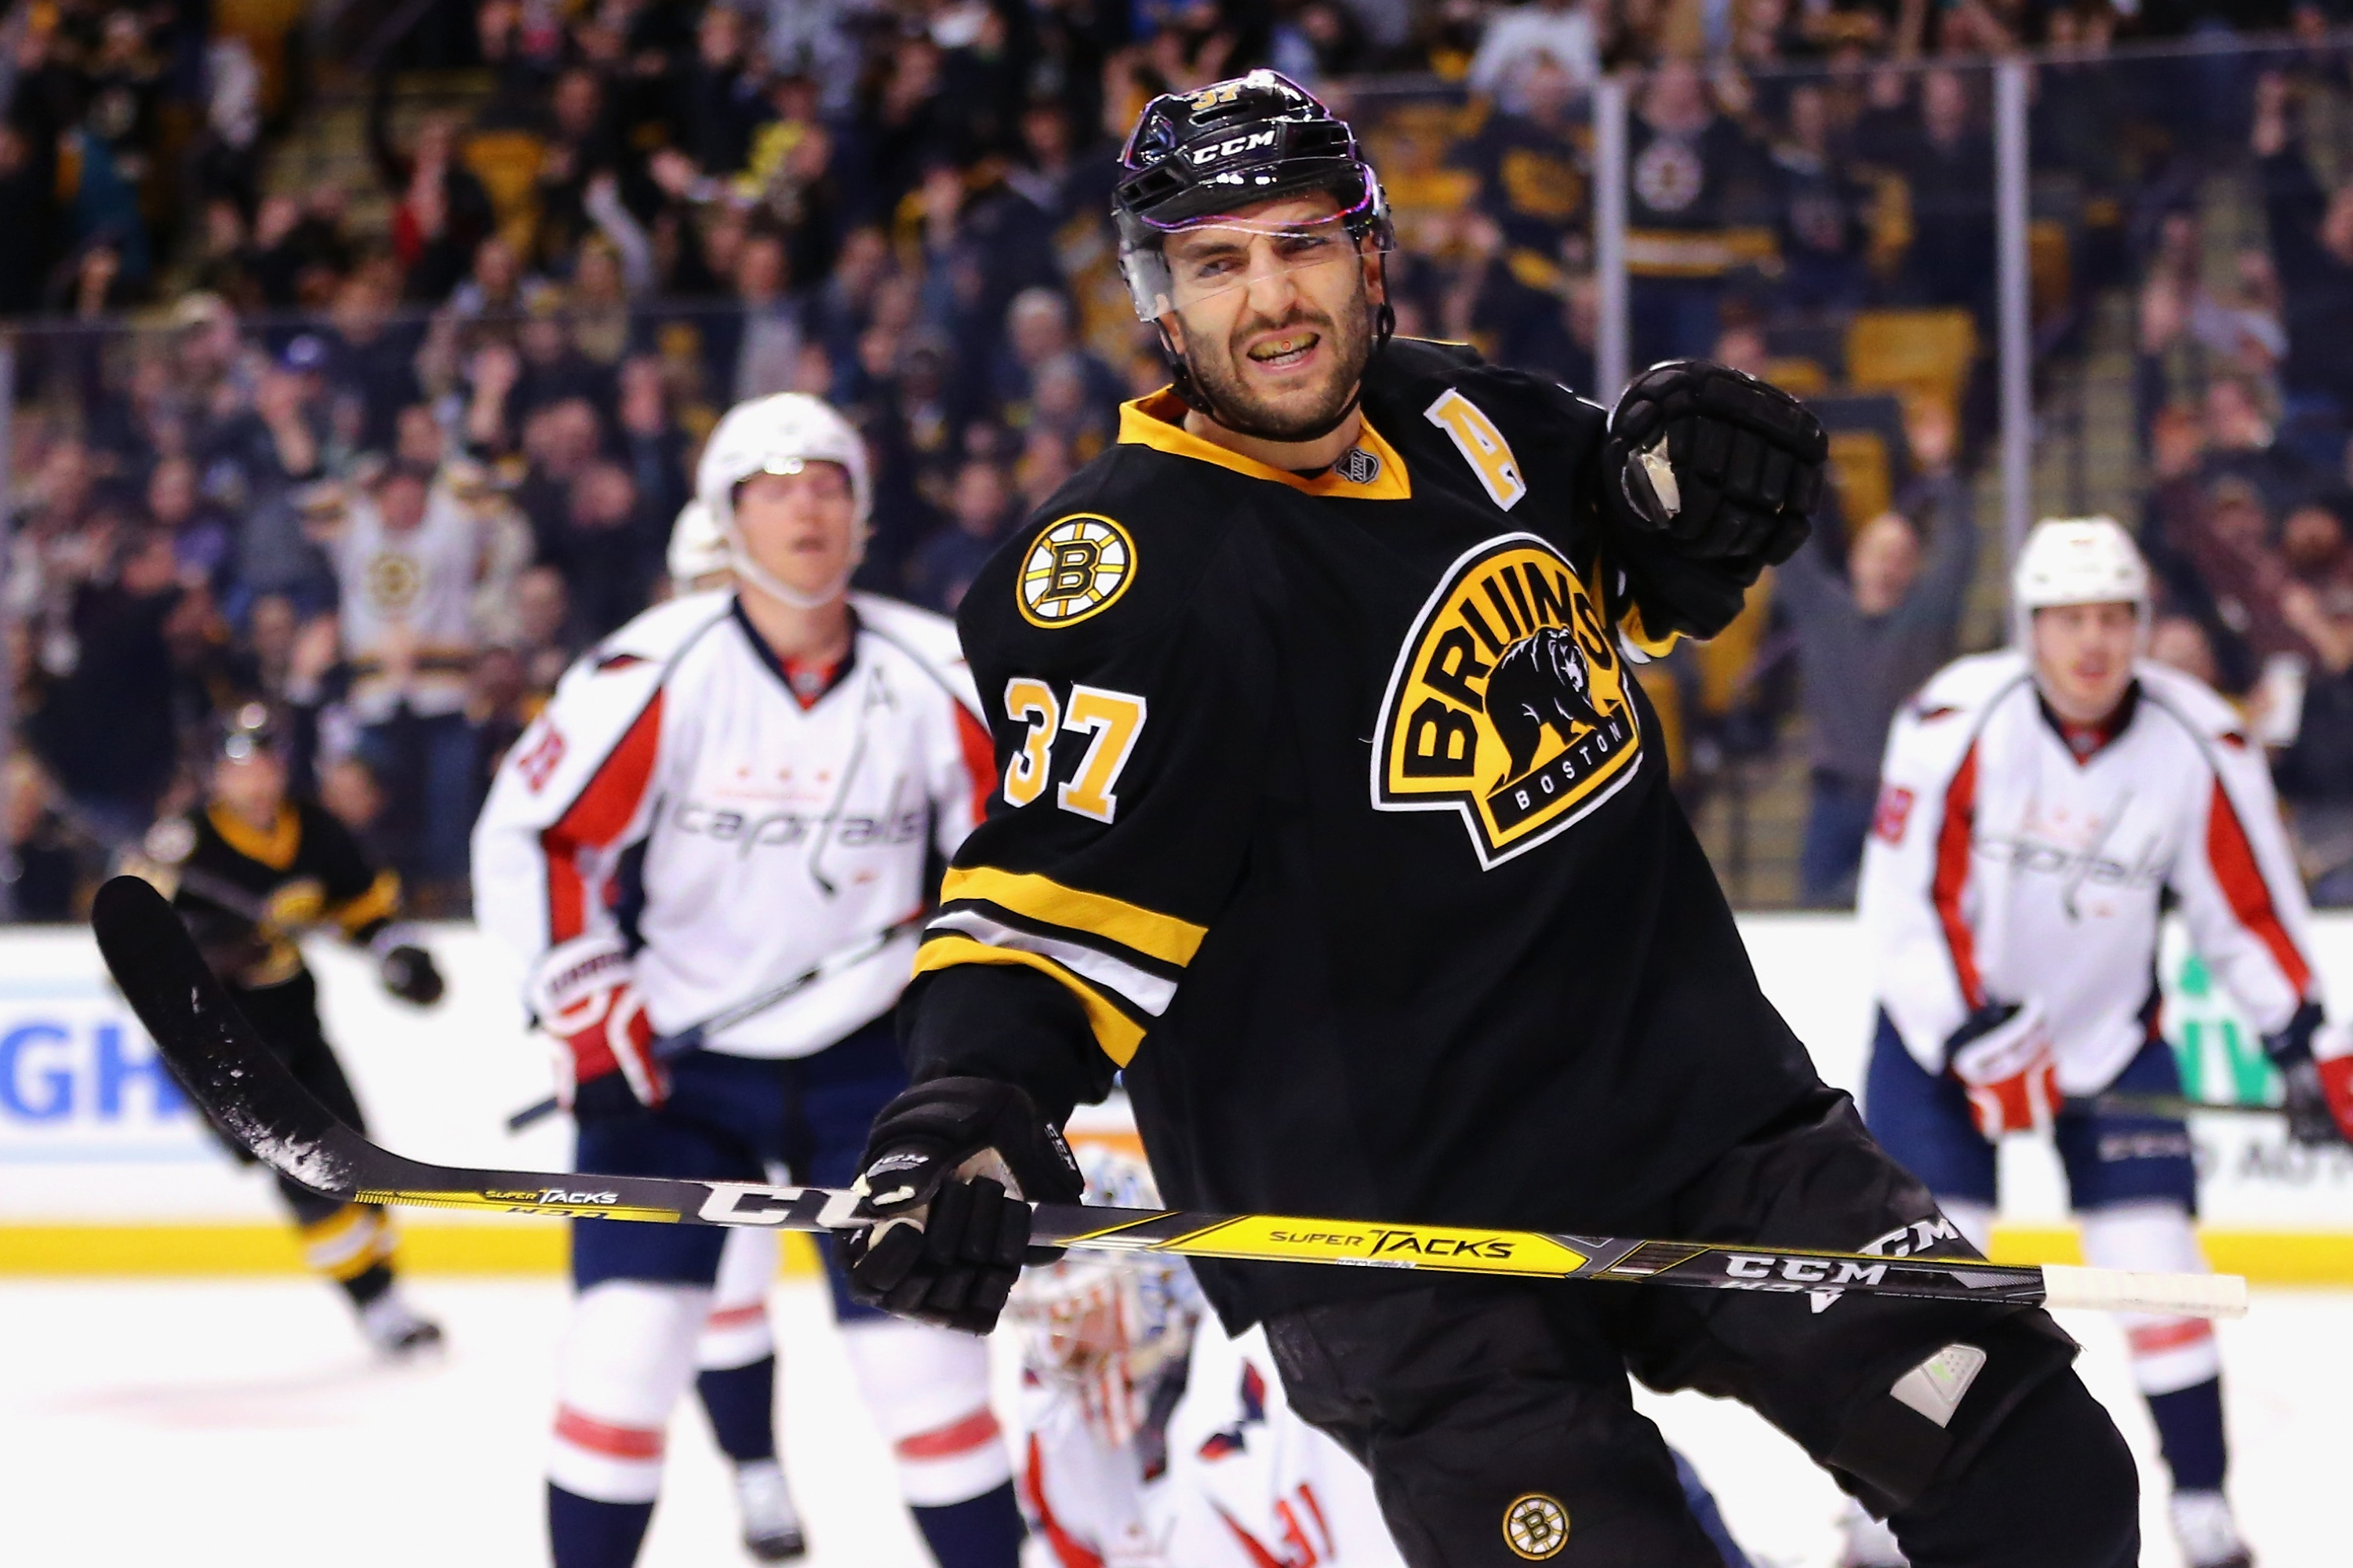 BOSTON, MA - MARCH 05:  Patrice Bergeron #37 of the Boston Bruins celebrates after scoring against the Washington Capitals during the first period at TD Garden on March 5, 2016 in Boston, Massachusetts.  (Photo by Maddie Meyer/Getty Images)